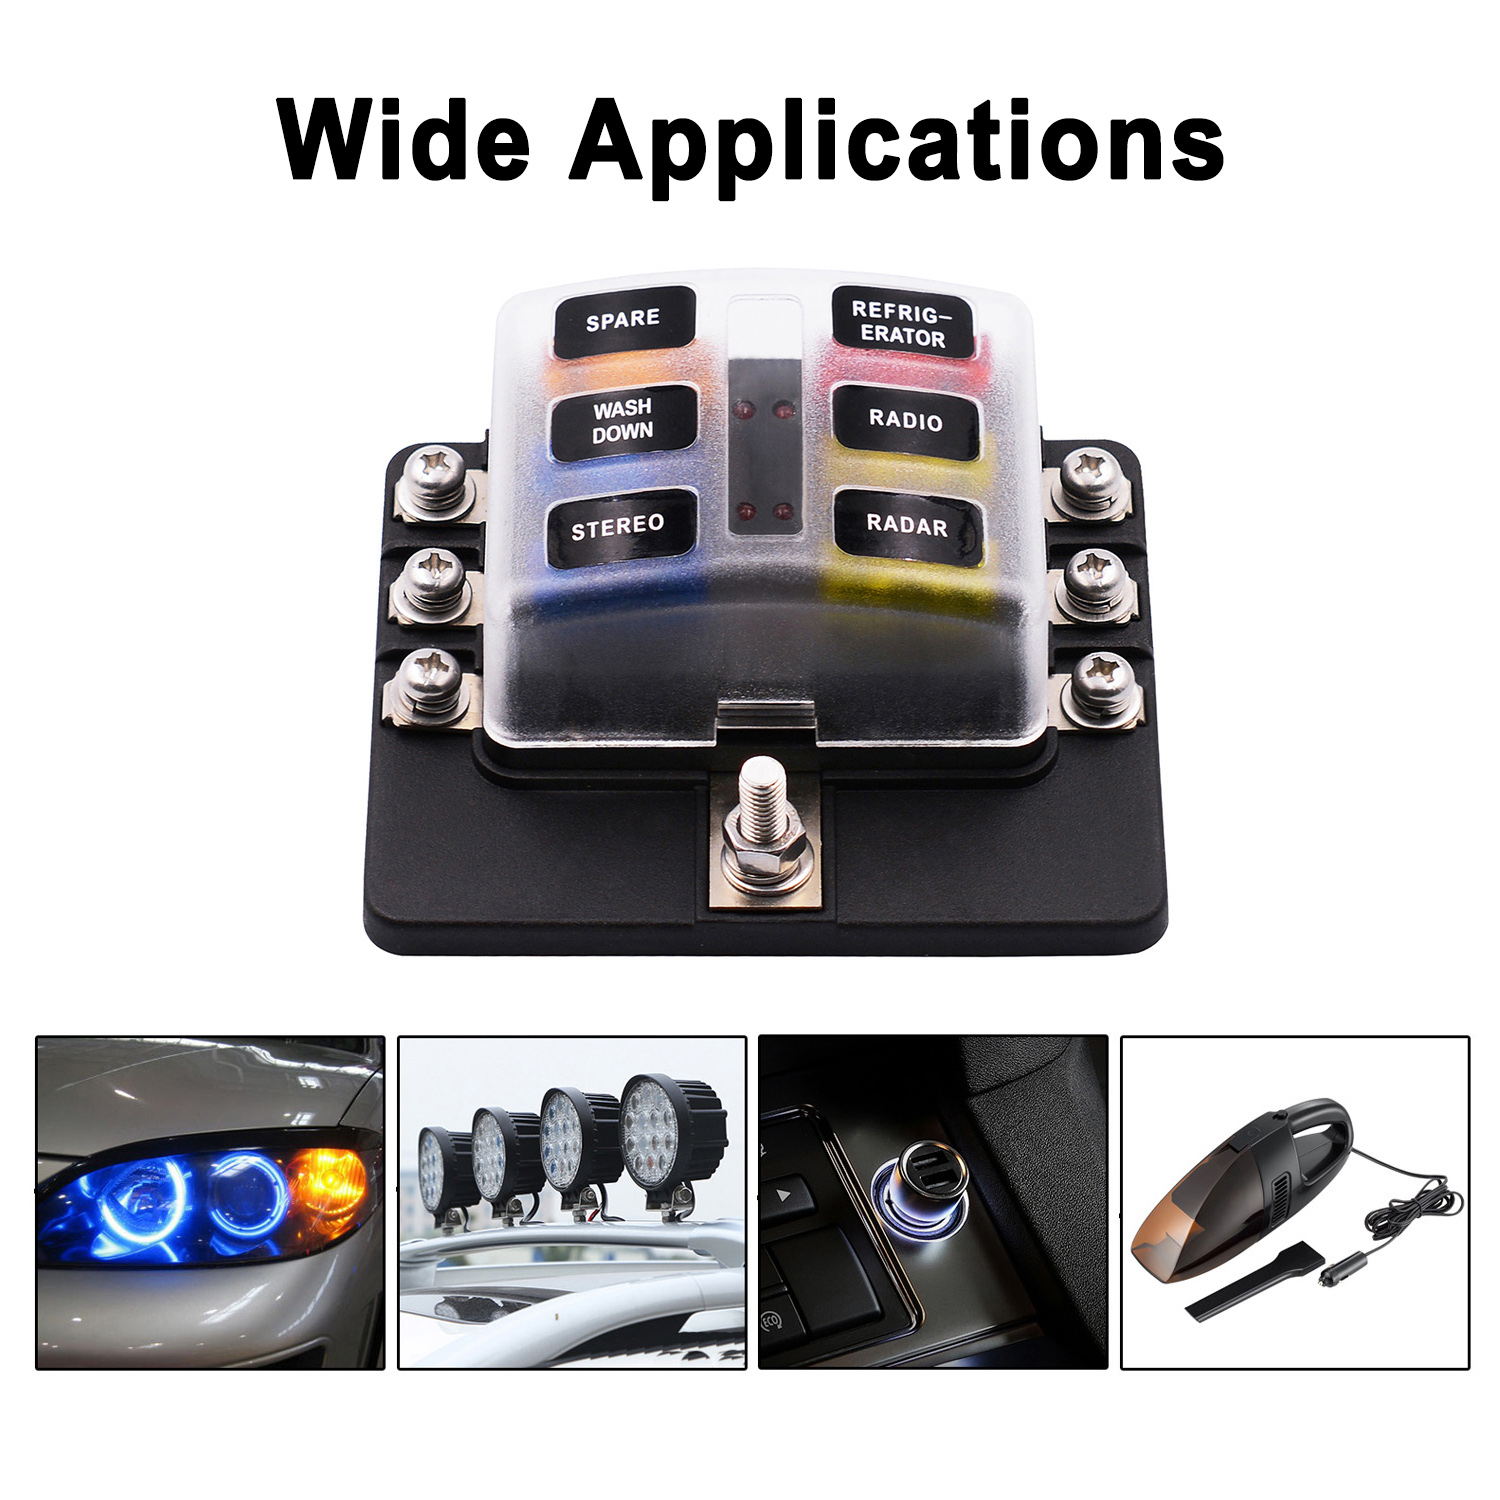 hight resolution of vetomile 6 way fuse box blade fuse holder 5a 10a 15a 20a free fuses led indicator waterproof cover for automotive car marine boat